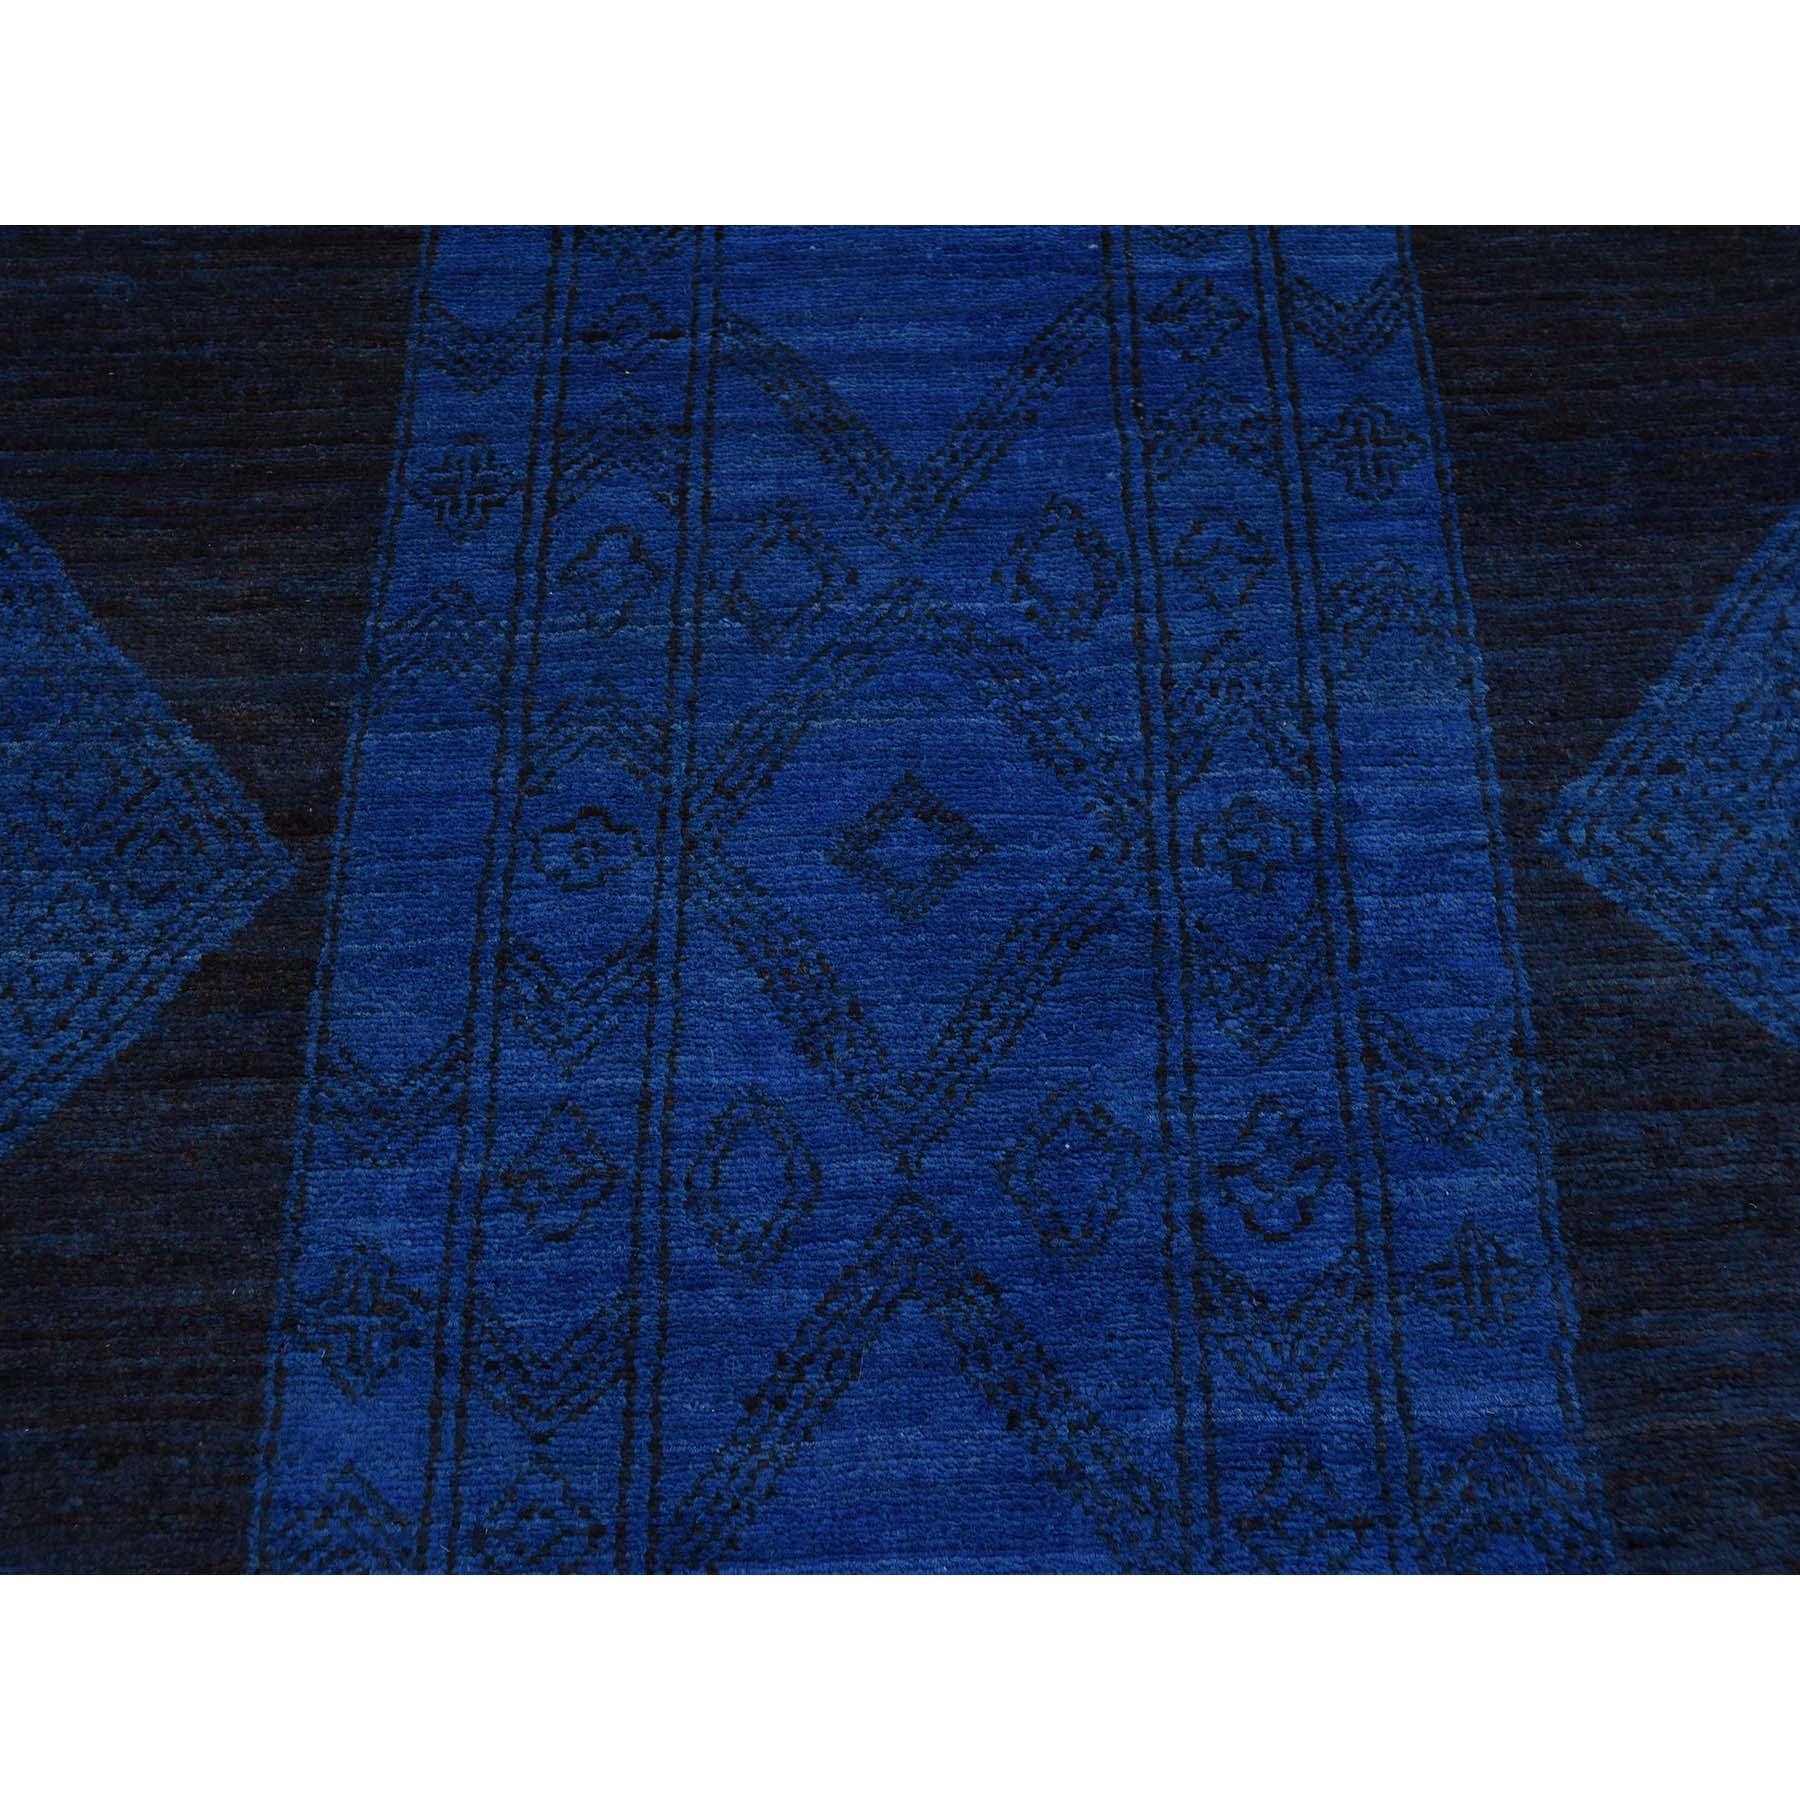 10-x13-1  Hand-Knotted South West Design Berber Motifs Oriental Rug